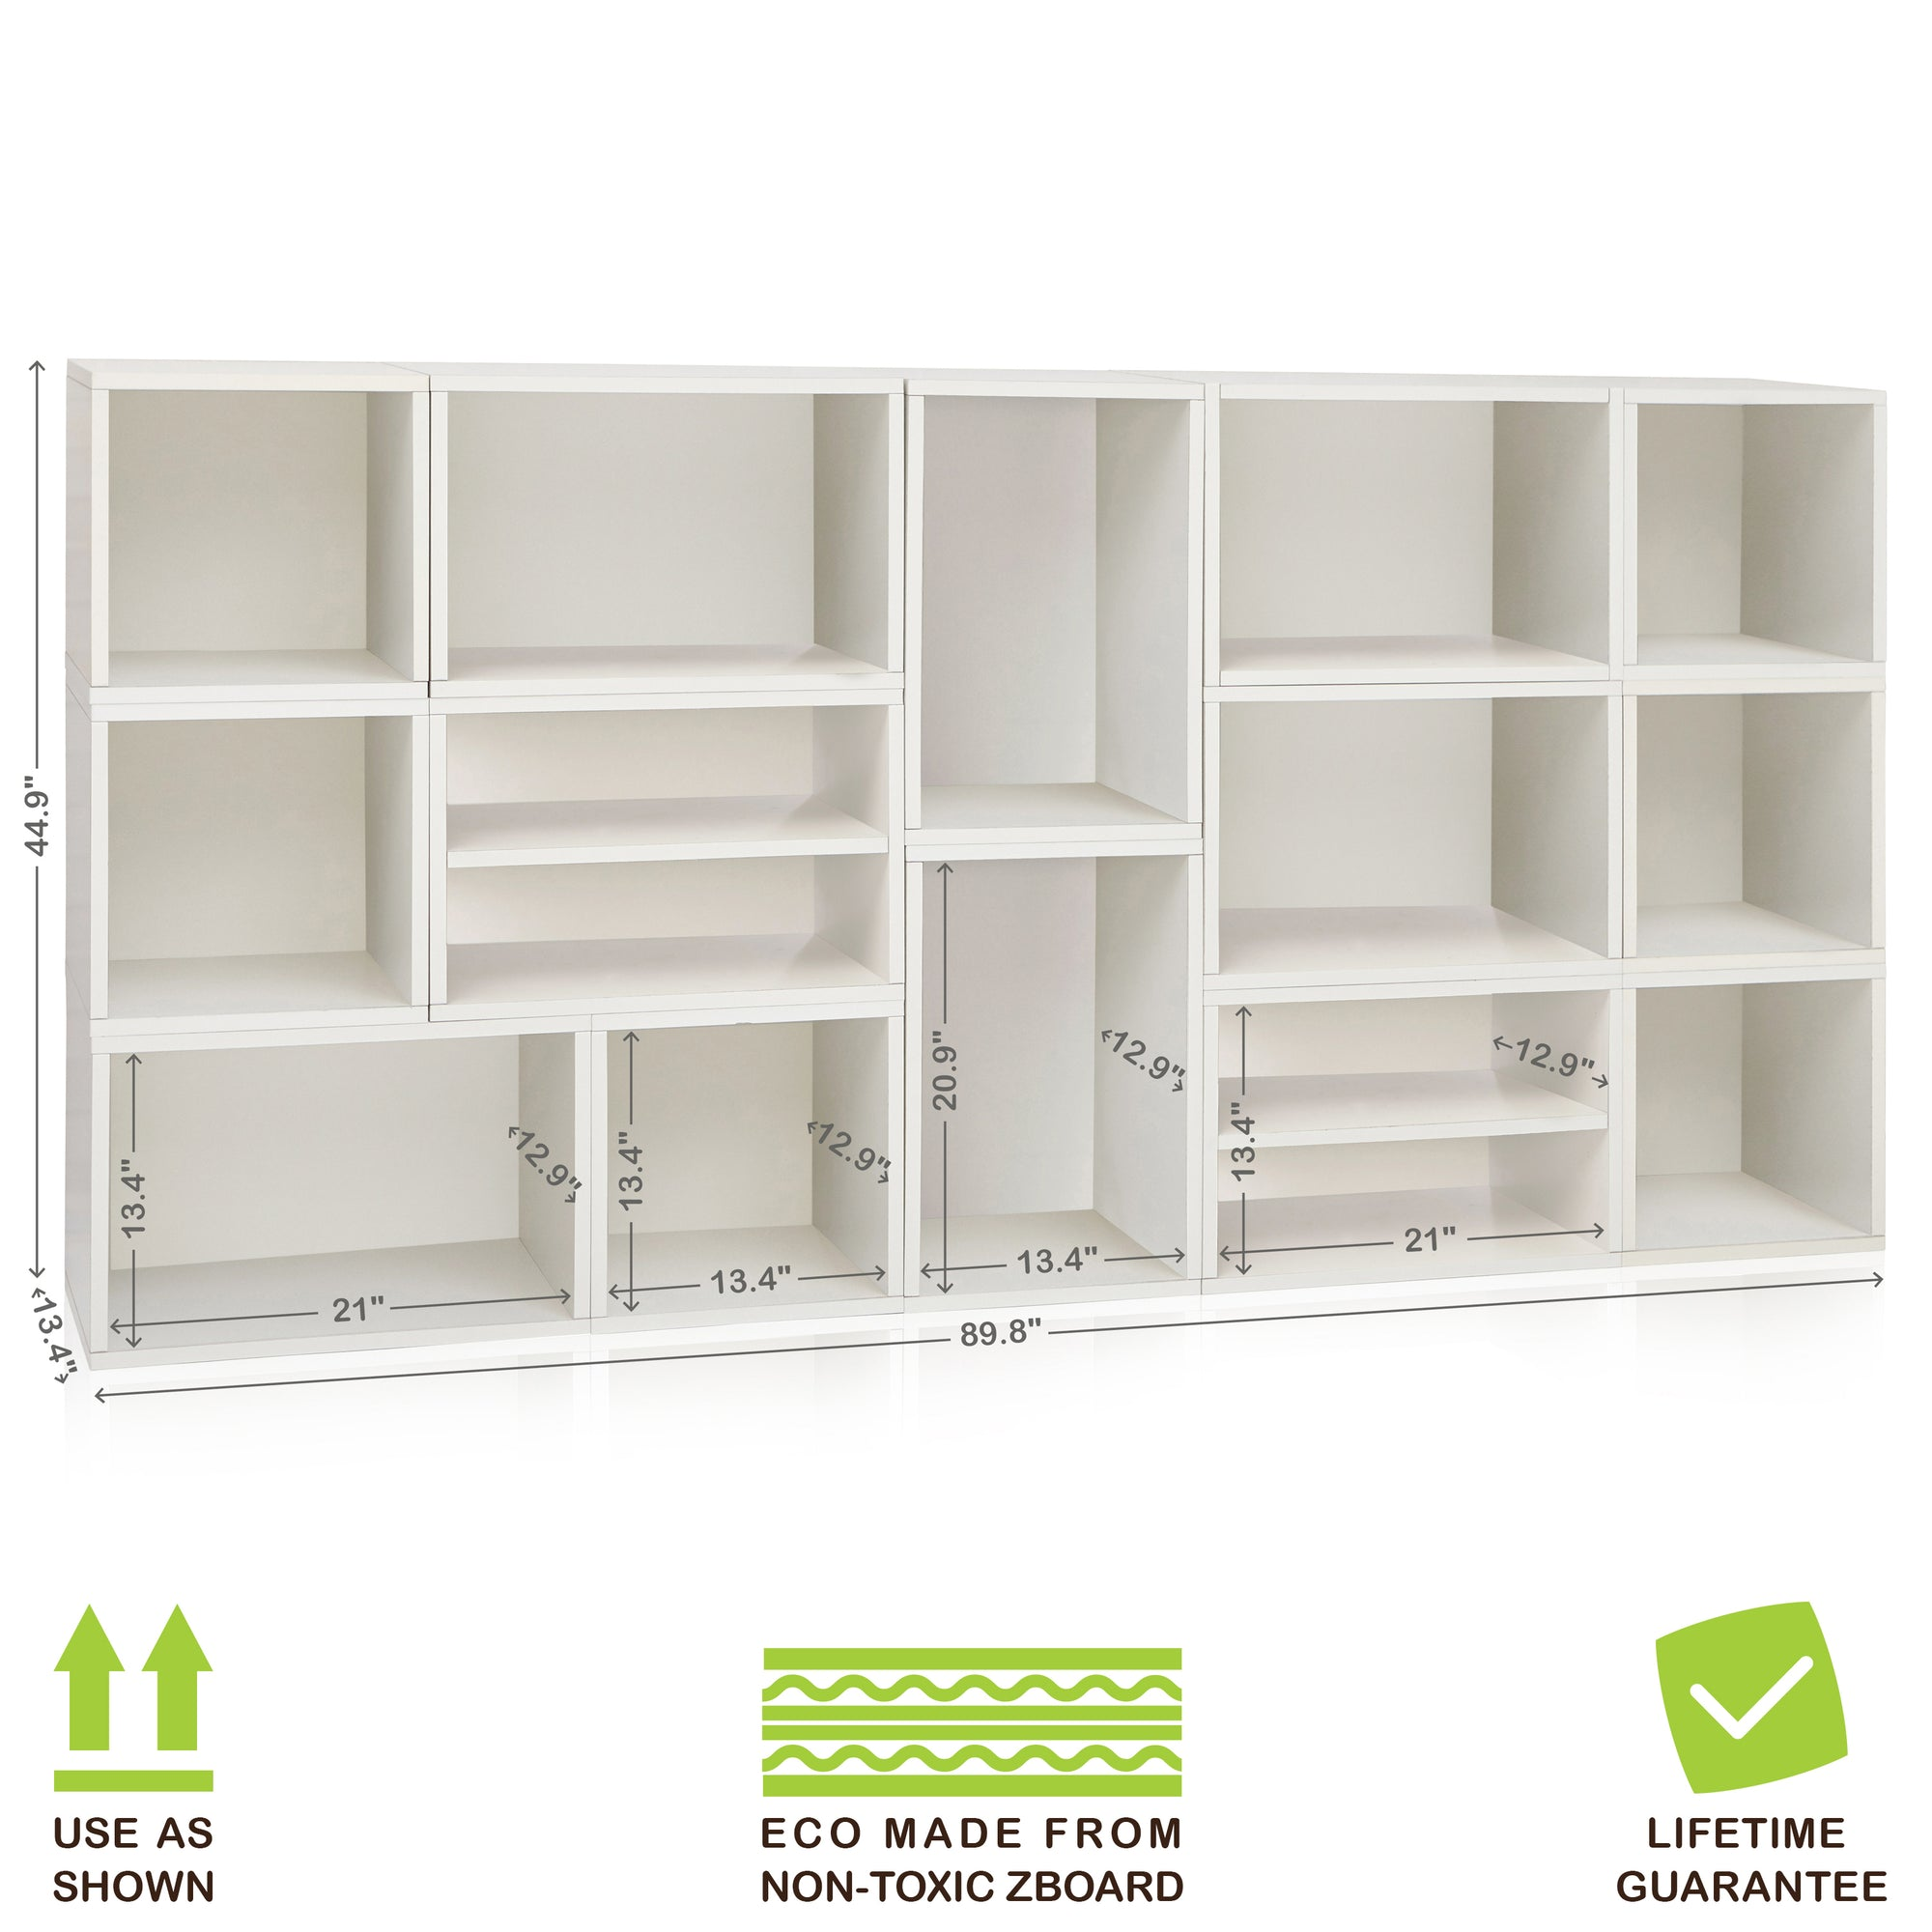 ikea storage free walmart racks shelves box diy full picture rack garment clothes size awesome inserts childrens rolling closets of cover bin closet shelf bins ideas standing